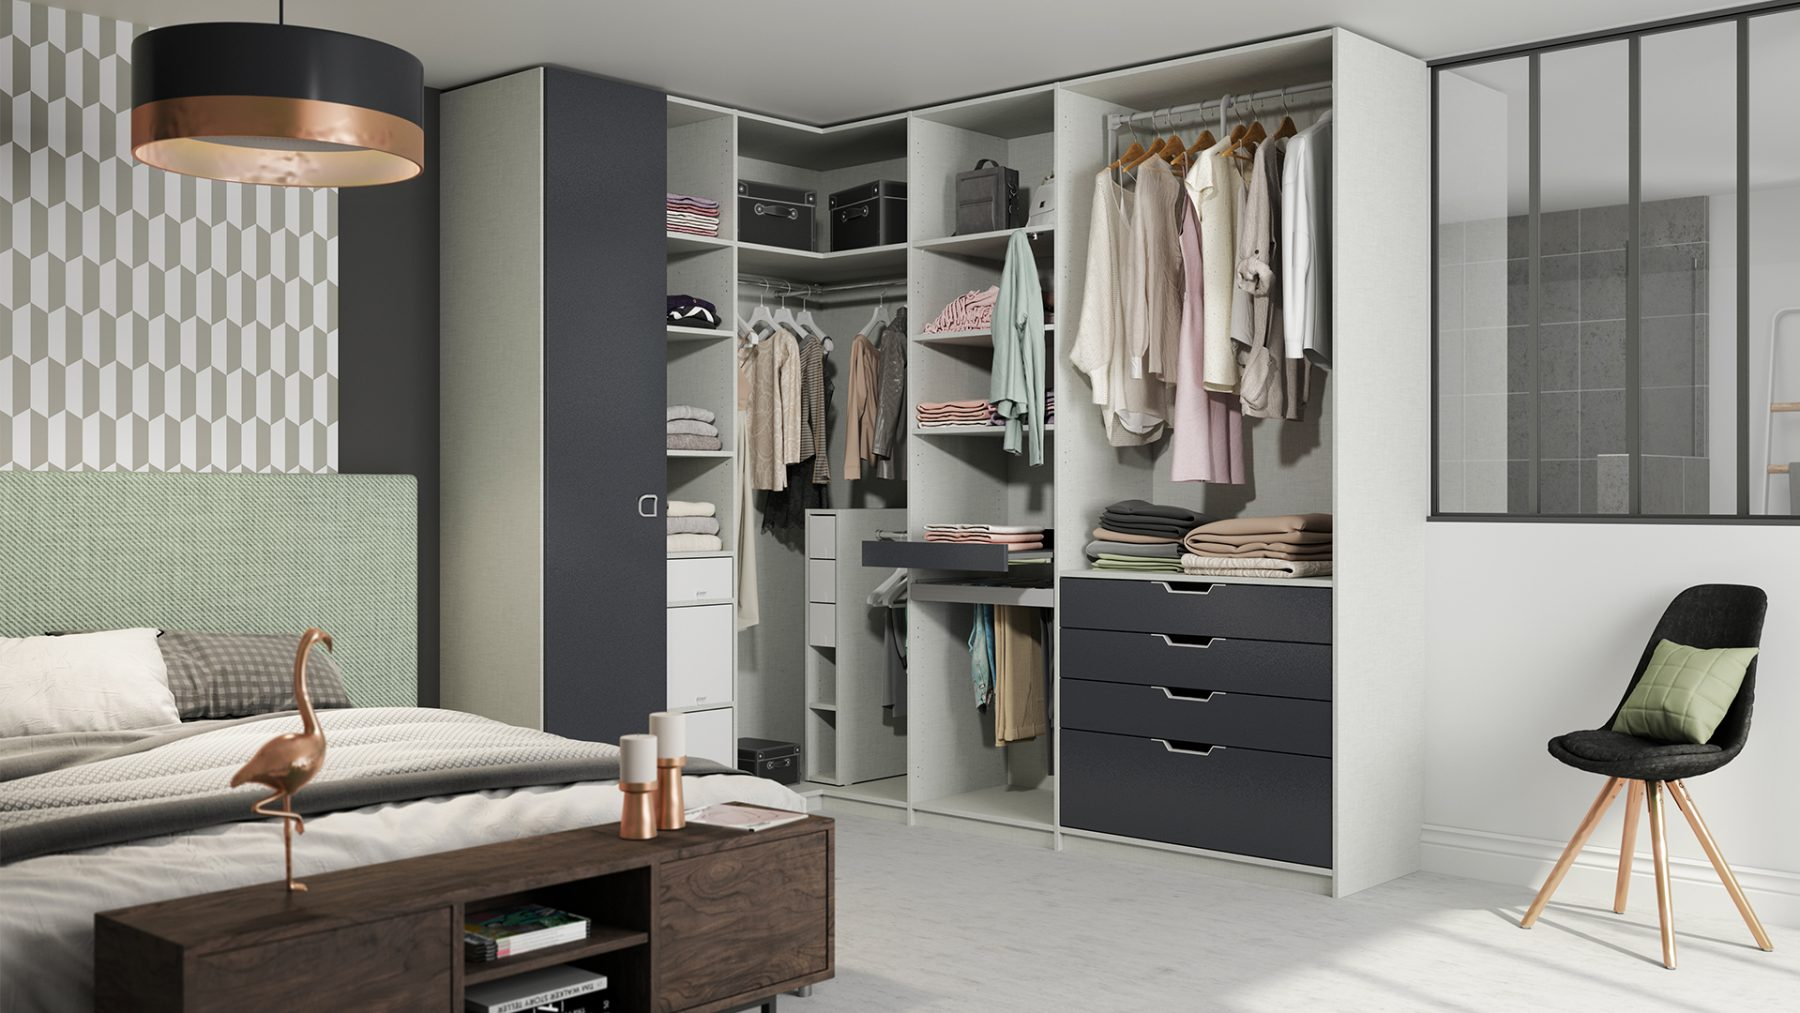 ambiance 3d garde robe organisation chambre modulaire